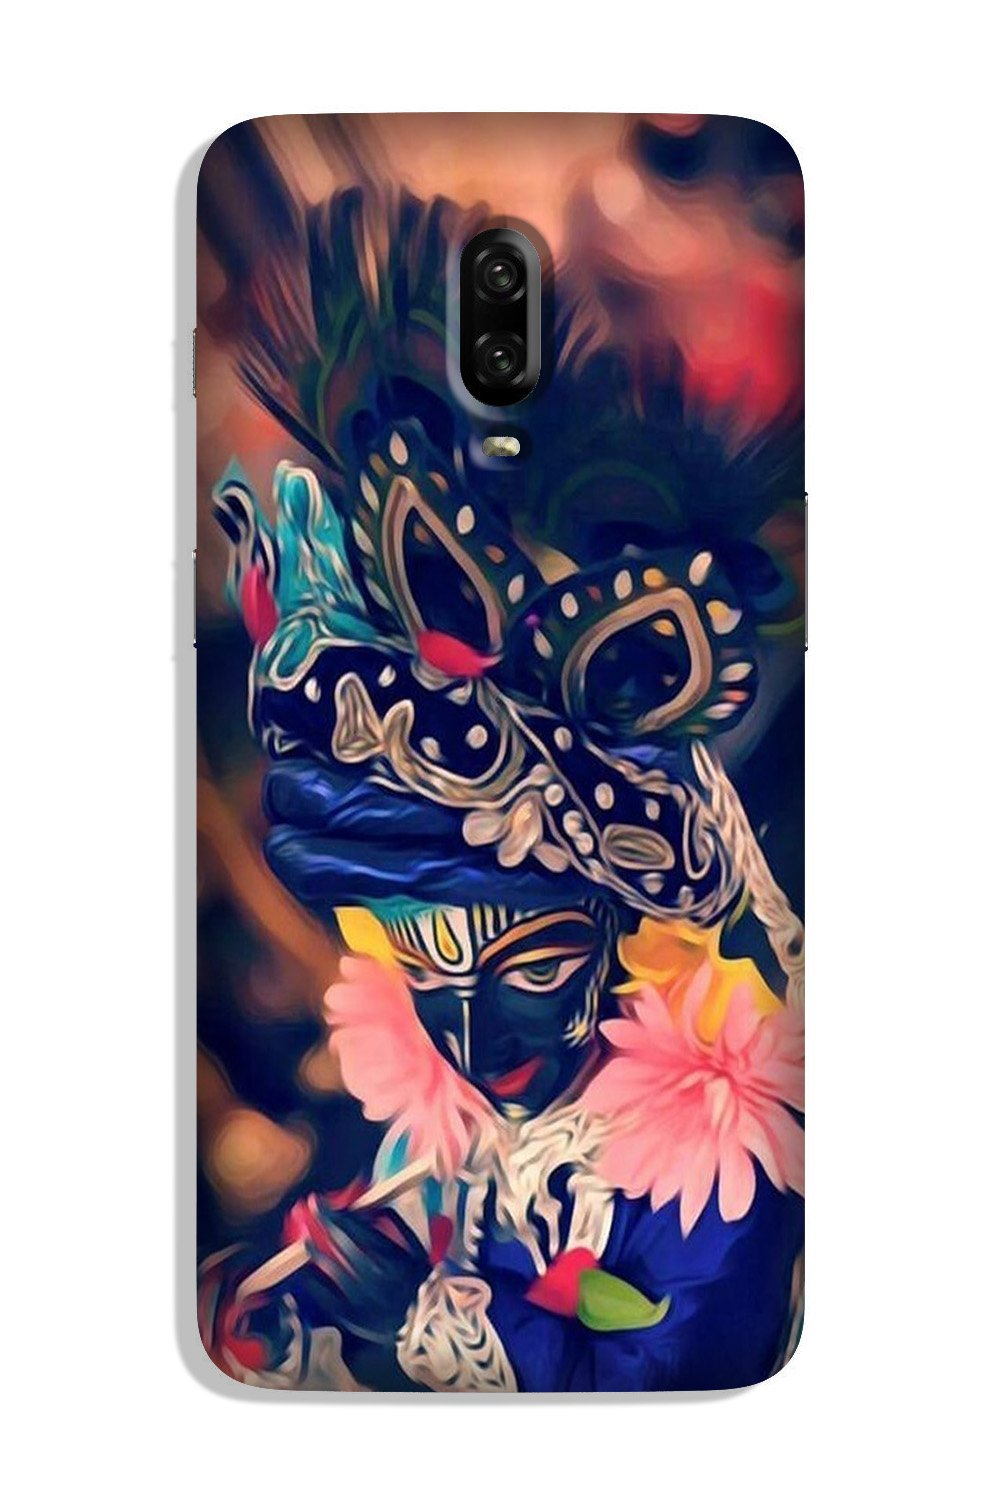 Lord Krishna Case for OnePlus 6T